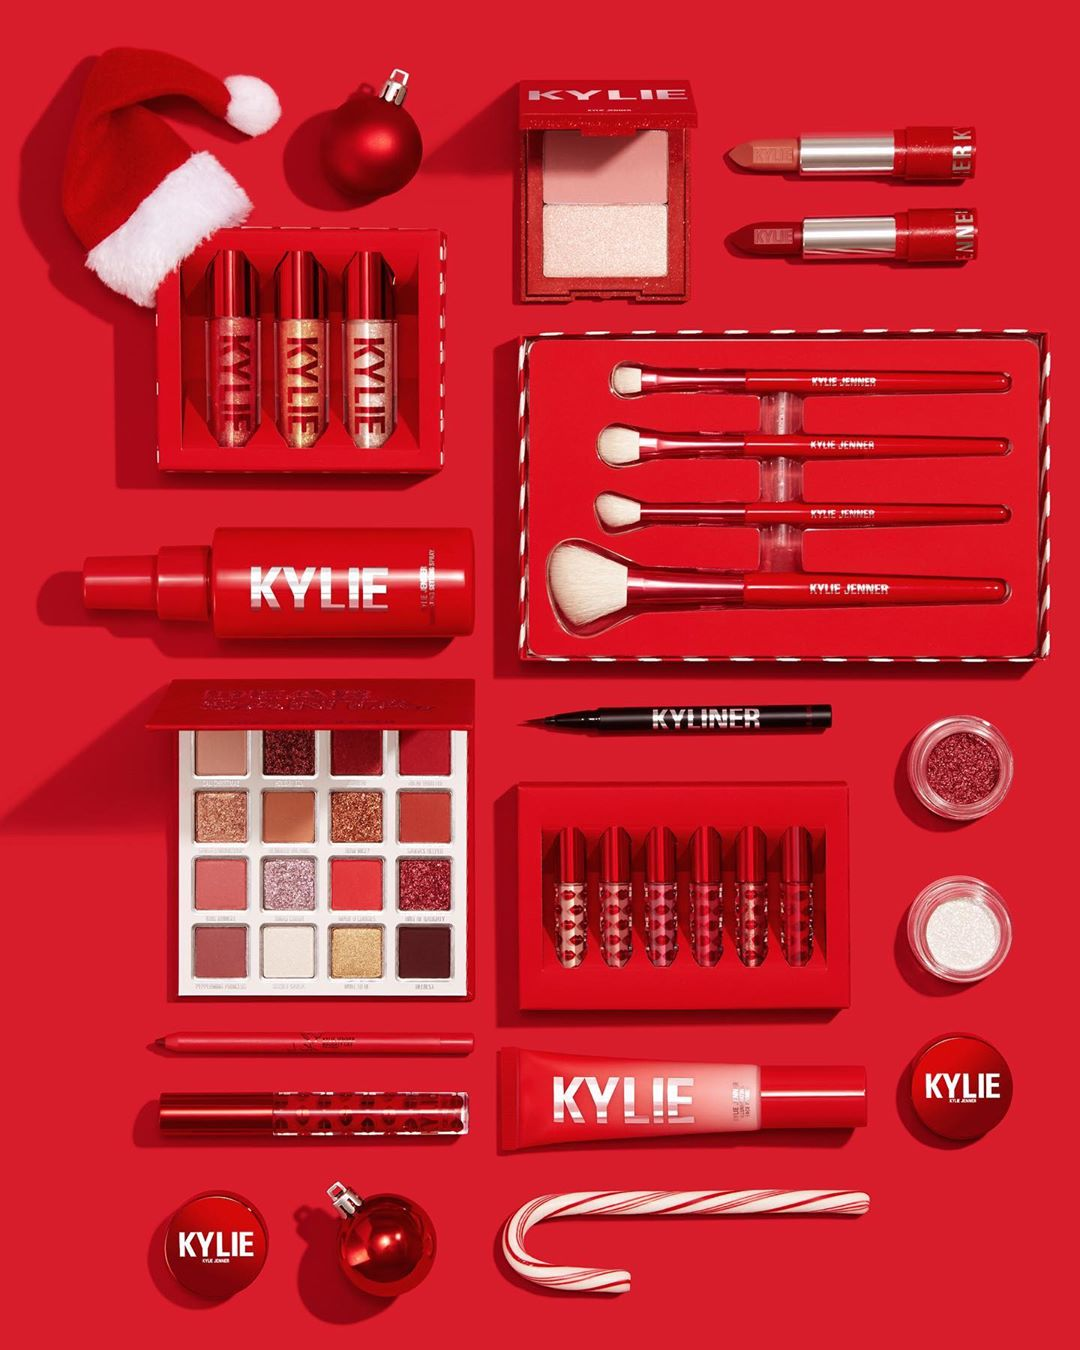 Kylie Cosmetics Holiday 2019 Campaign